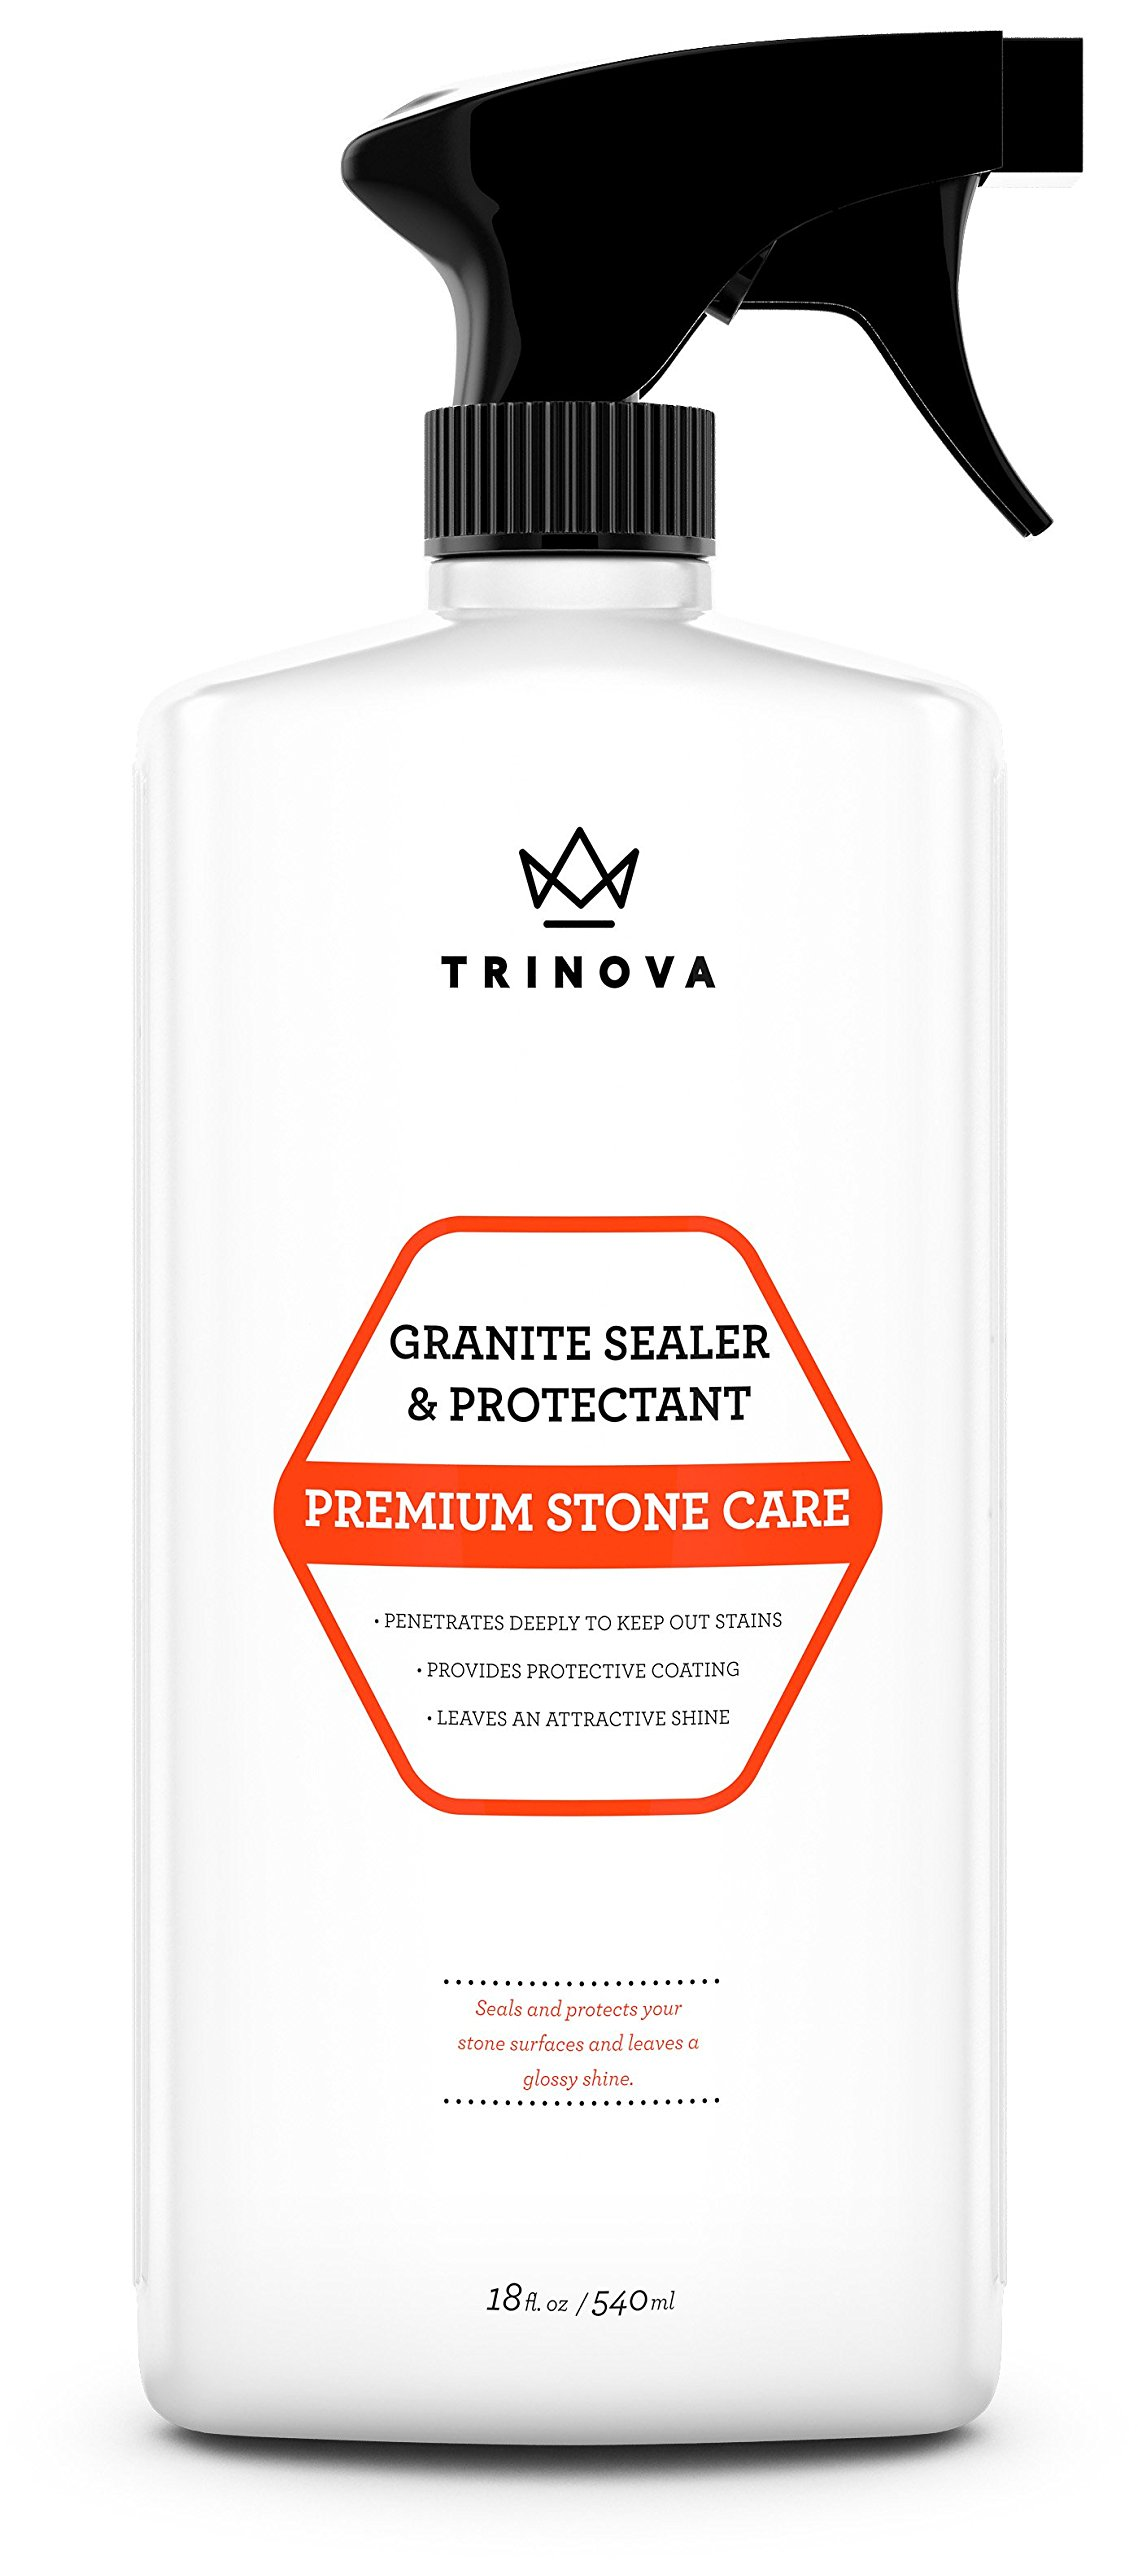 Granite Sealer & Protector - Best Stone Polish, Protectant & Care Product - Easy Maintenance for Clean Countertop Surface, Marble, Tile - No Streaks, Stains, Haze, or Spots - 18 OZ - TriNova